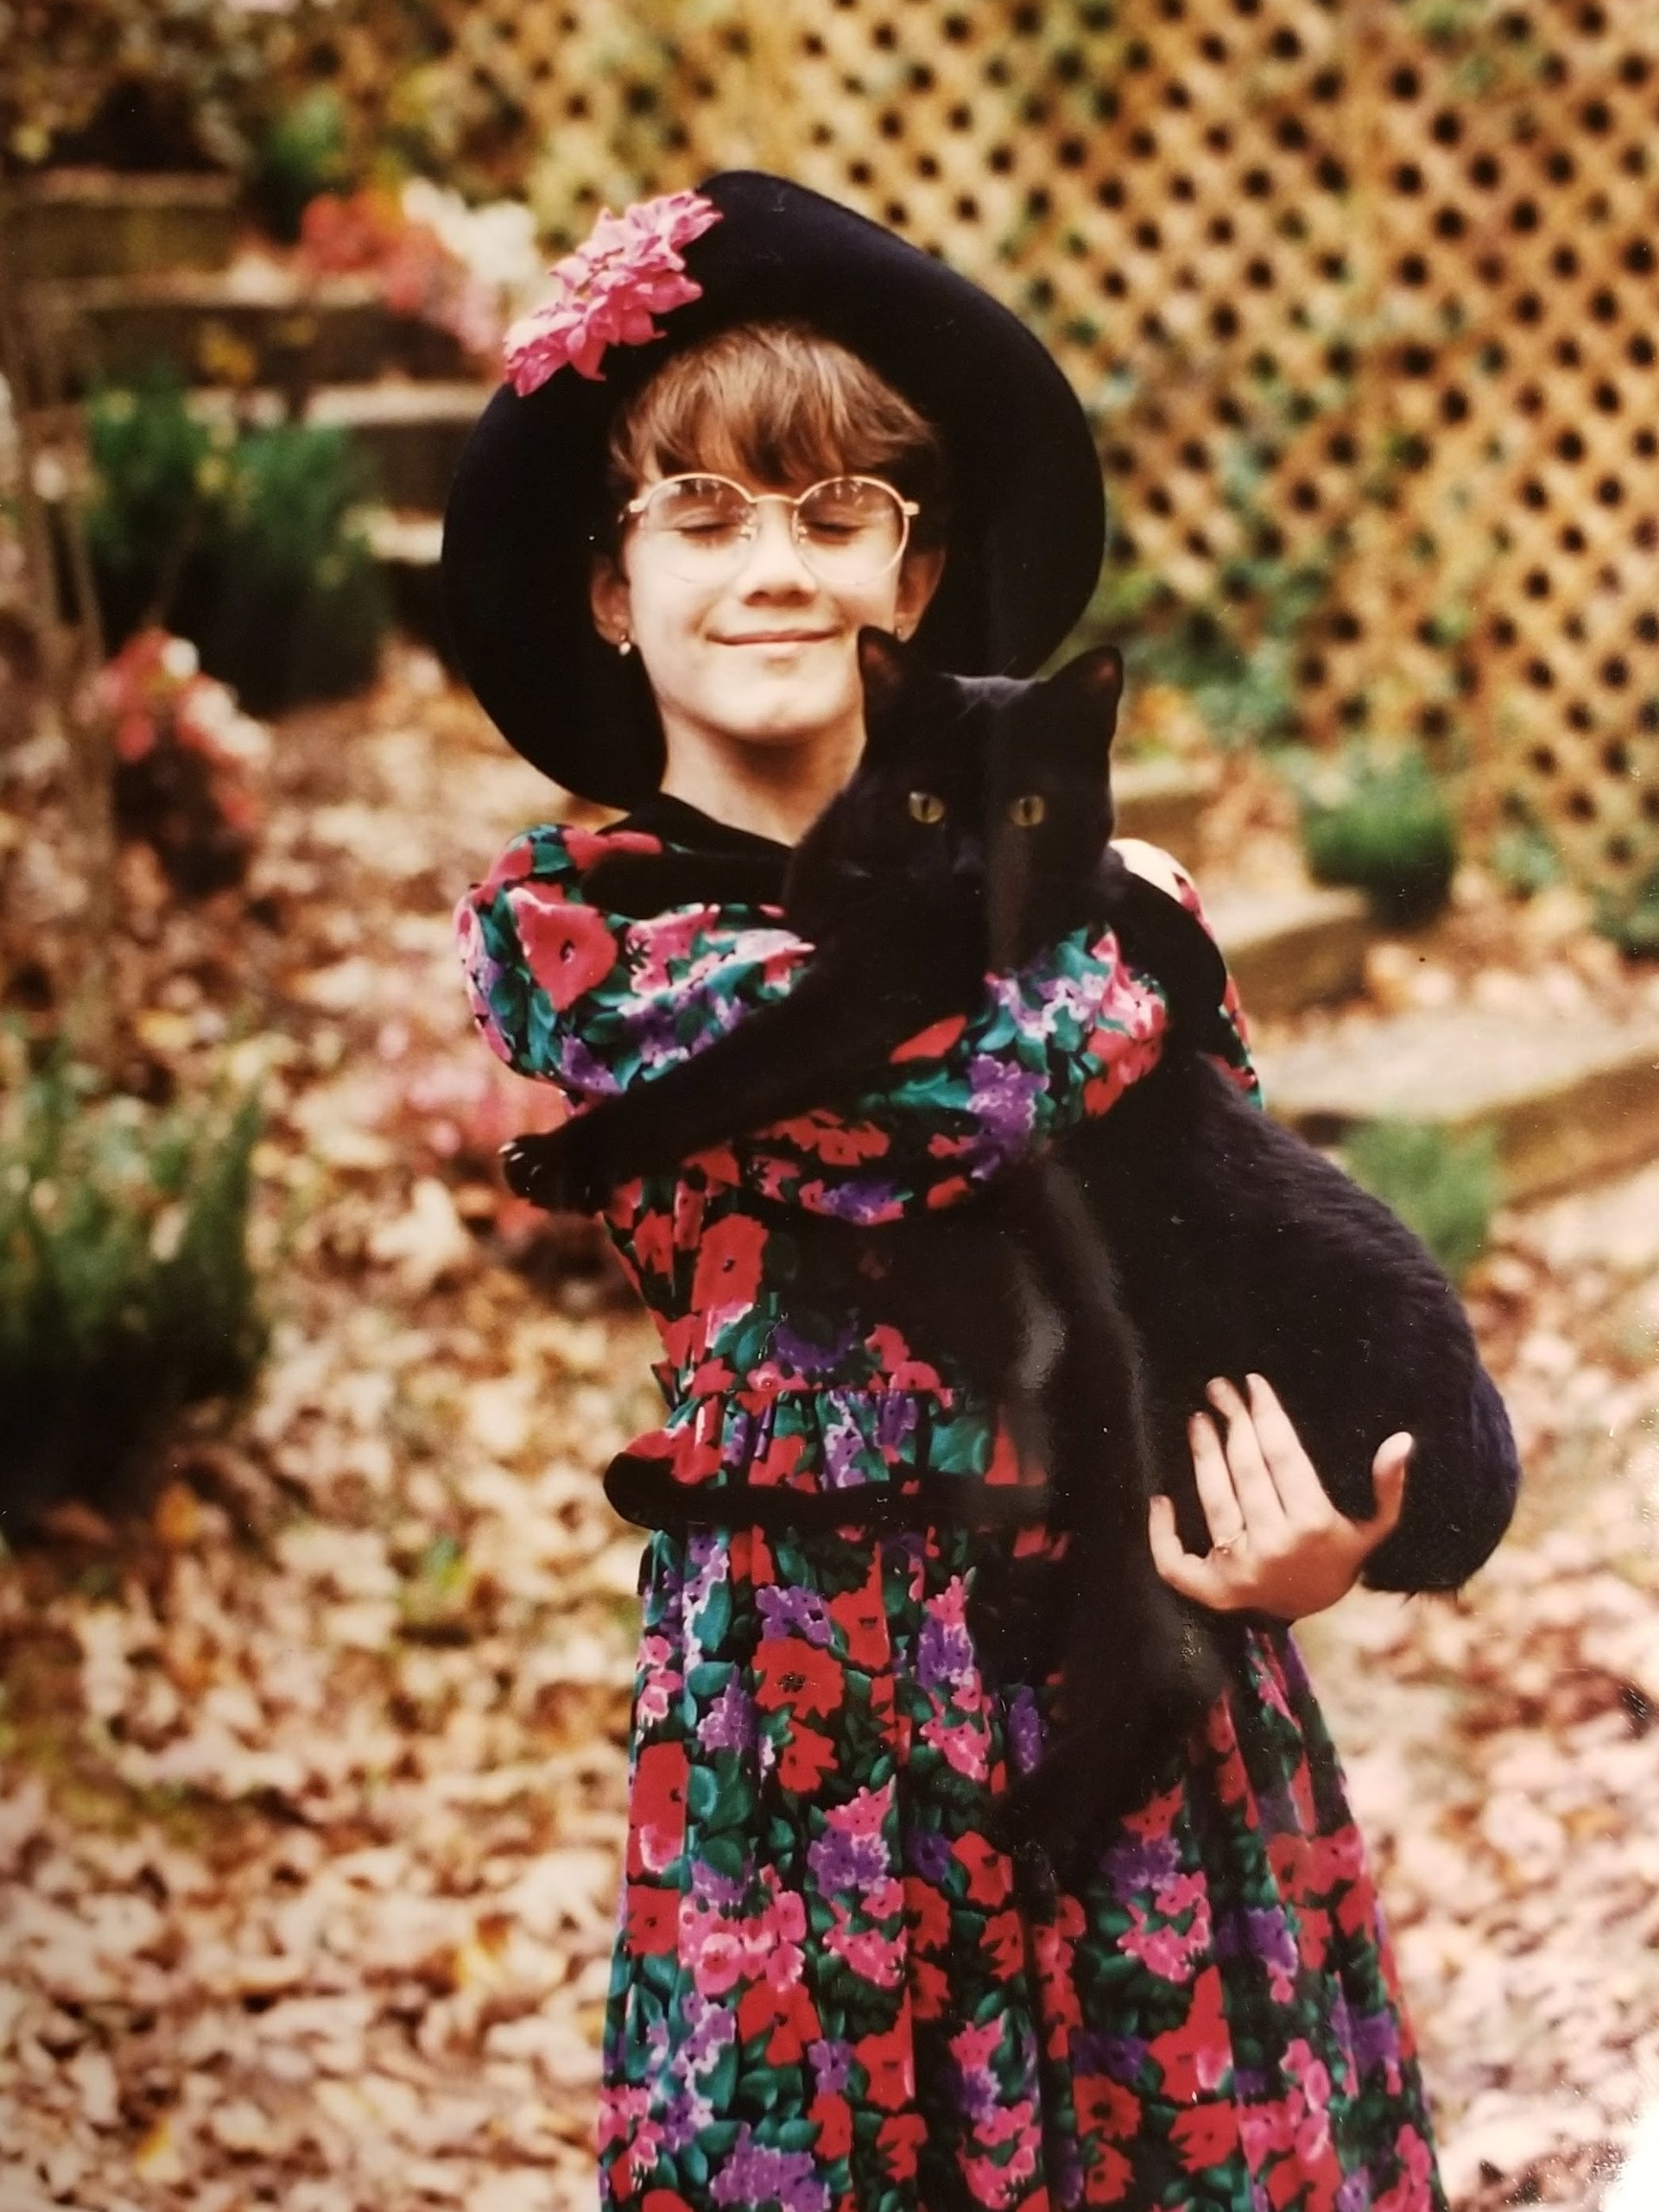 Purrfect accessory - The pink flower on the hat really makes a statement on top of the wild floral pattern of the dress. But what keeps it all coherent is the black trim!Accessorize with your favorite black cat to bring it to the next level.